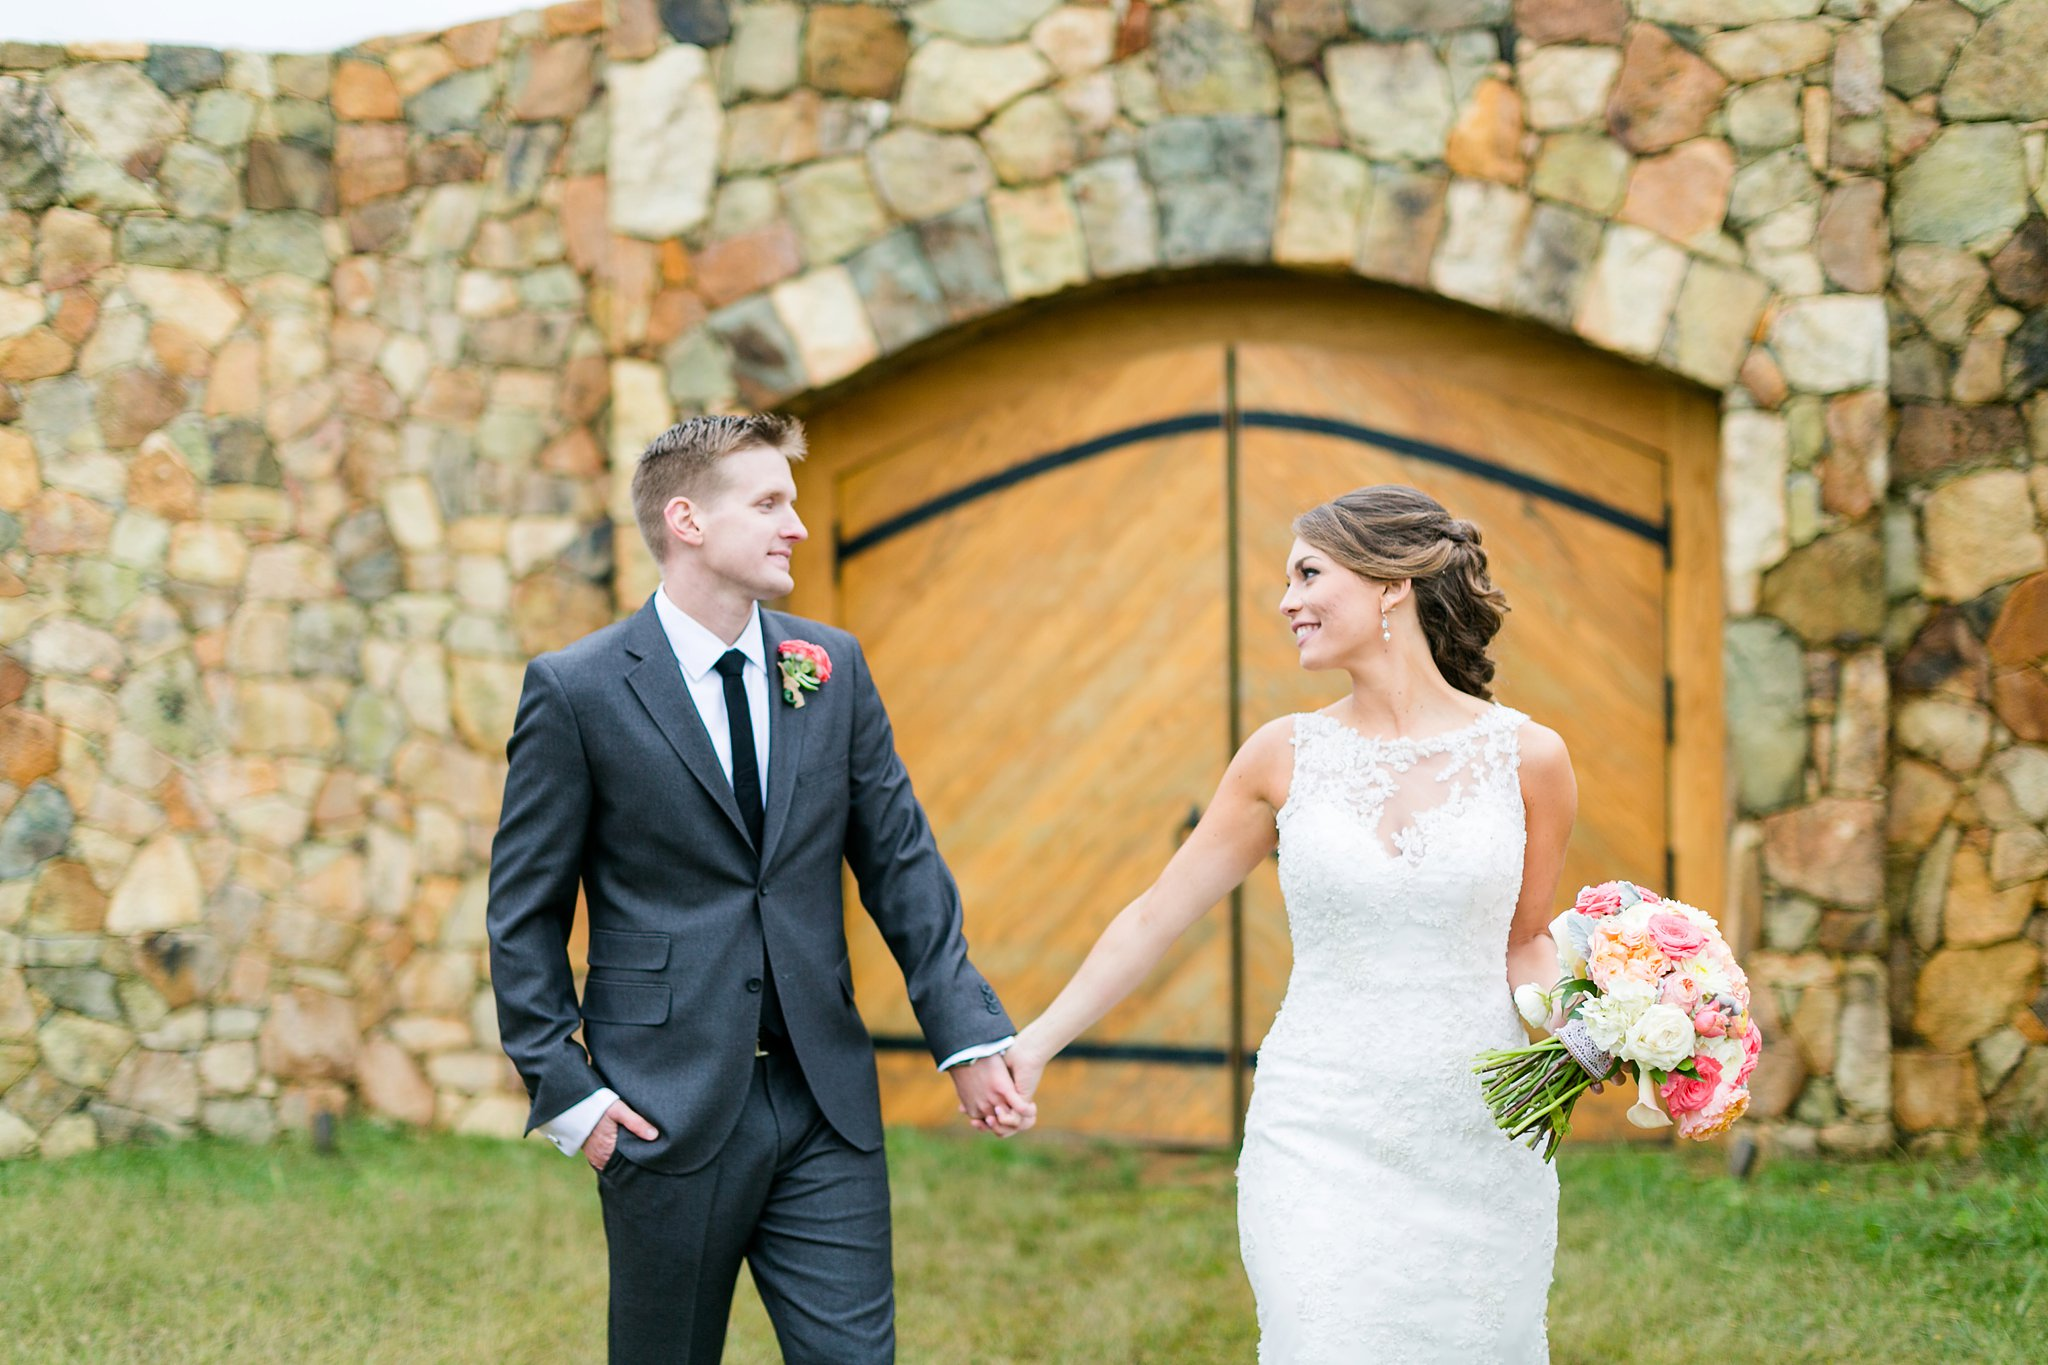 Stone Tower Winery Wedding Photos Virginia Wedding Photographer Megan Kelsey Photography Sam & Angela-254.jpg